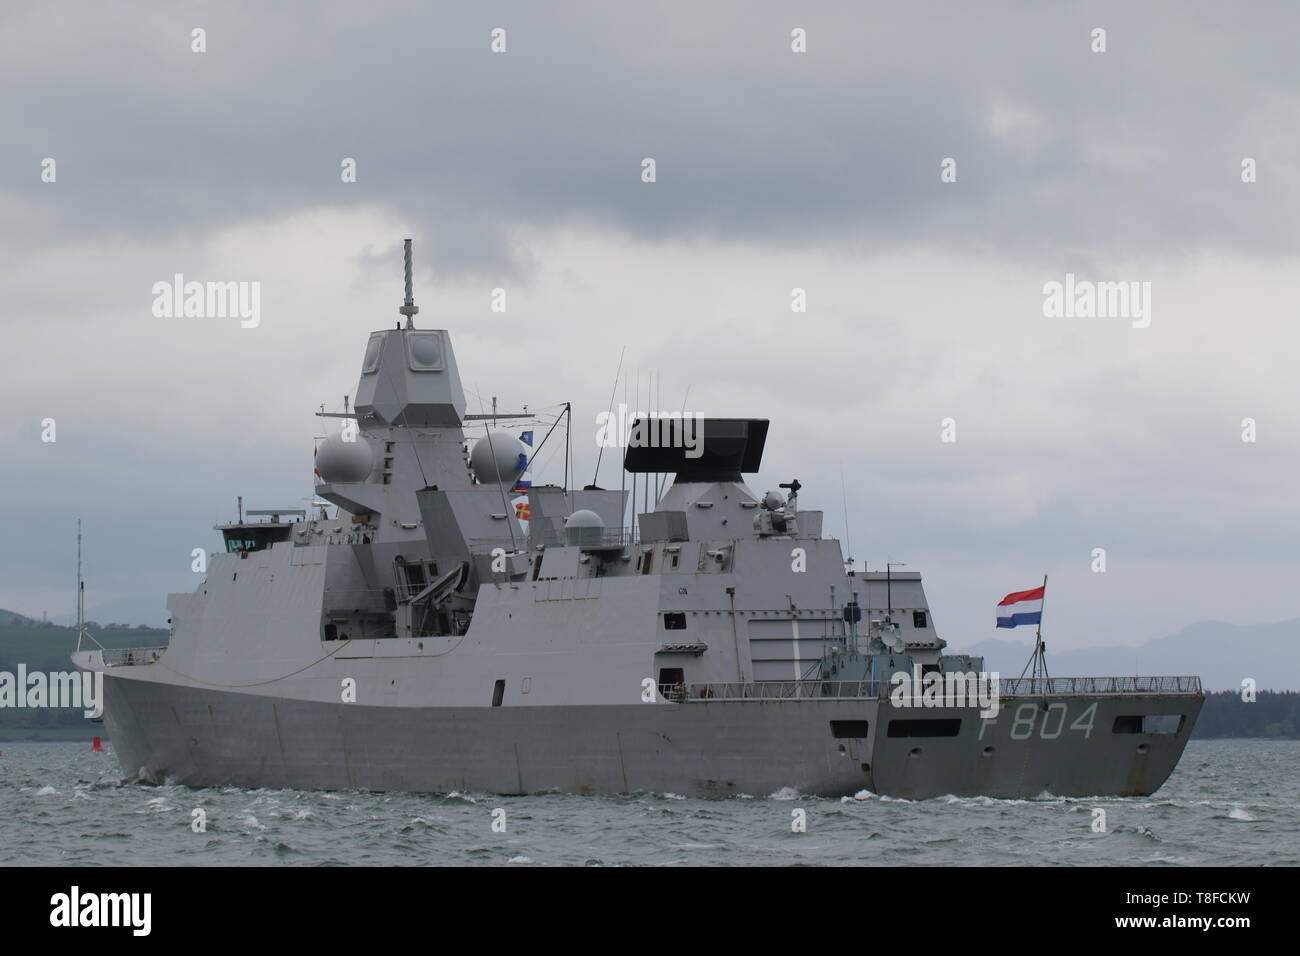 HNLMS De Ruyter (F804), a De Zeven Provincien-class frigate operated by the Netherlands Navy, passing Gourock during Exercise Formidable Shield 2019. Stock Photo